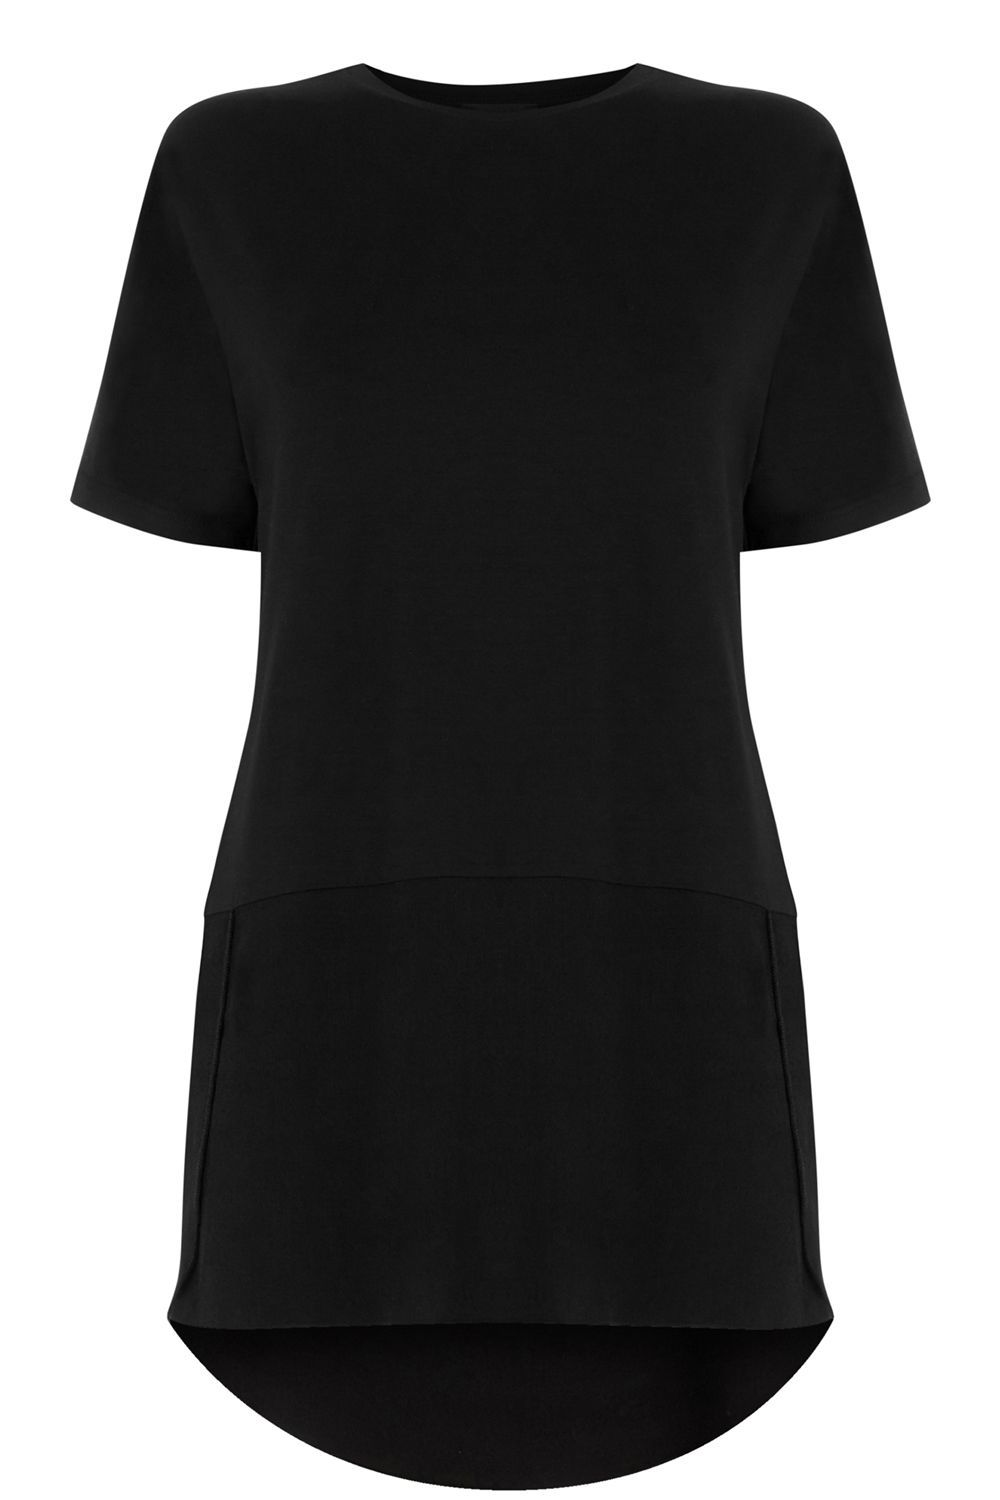 Woven Mix Short Sleeved Top, Black - neckline: round neck; pattern: plain; length: below the bottom; predominant colour: black; occasions: casual; style: top; fibres: polyester/polyamide - 100%; fit: body skimming; back detail: longer hem at back than at front; sleeve length: short sleeve; sleeve style: standard; pattern type: fabric; texture group: other - light to midweight; season: s/s 2016; wardrobe: basic